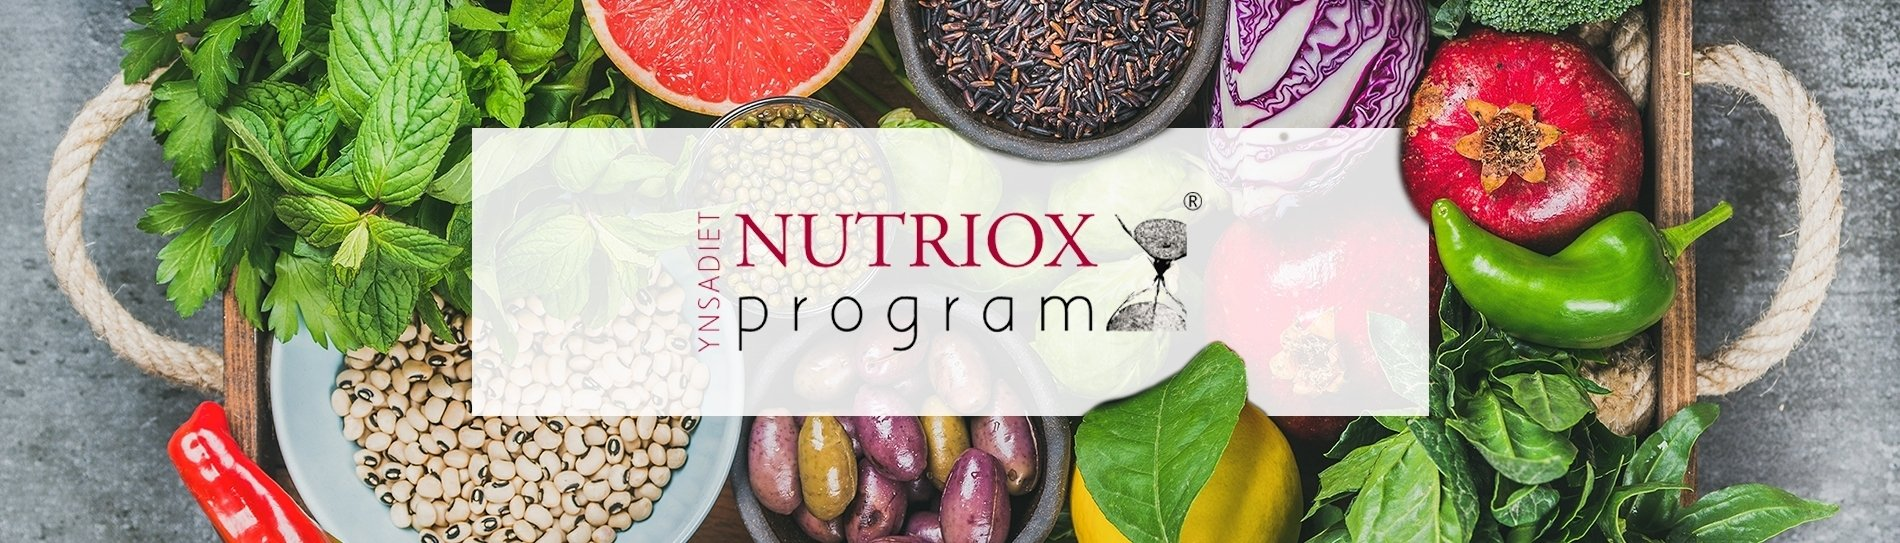 Plan Nutriox antioxidante